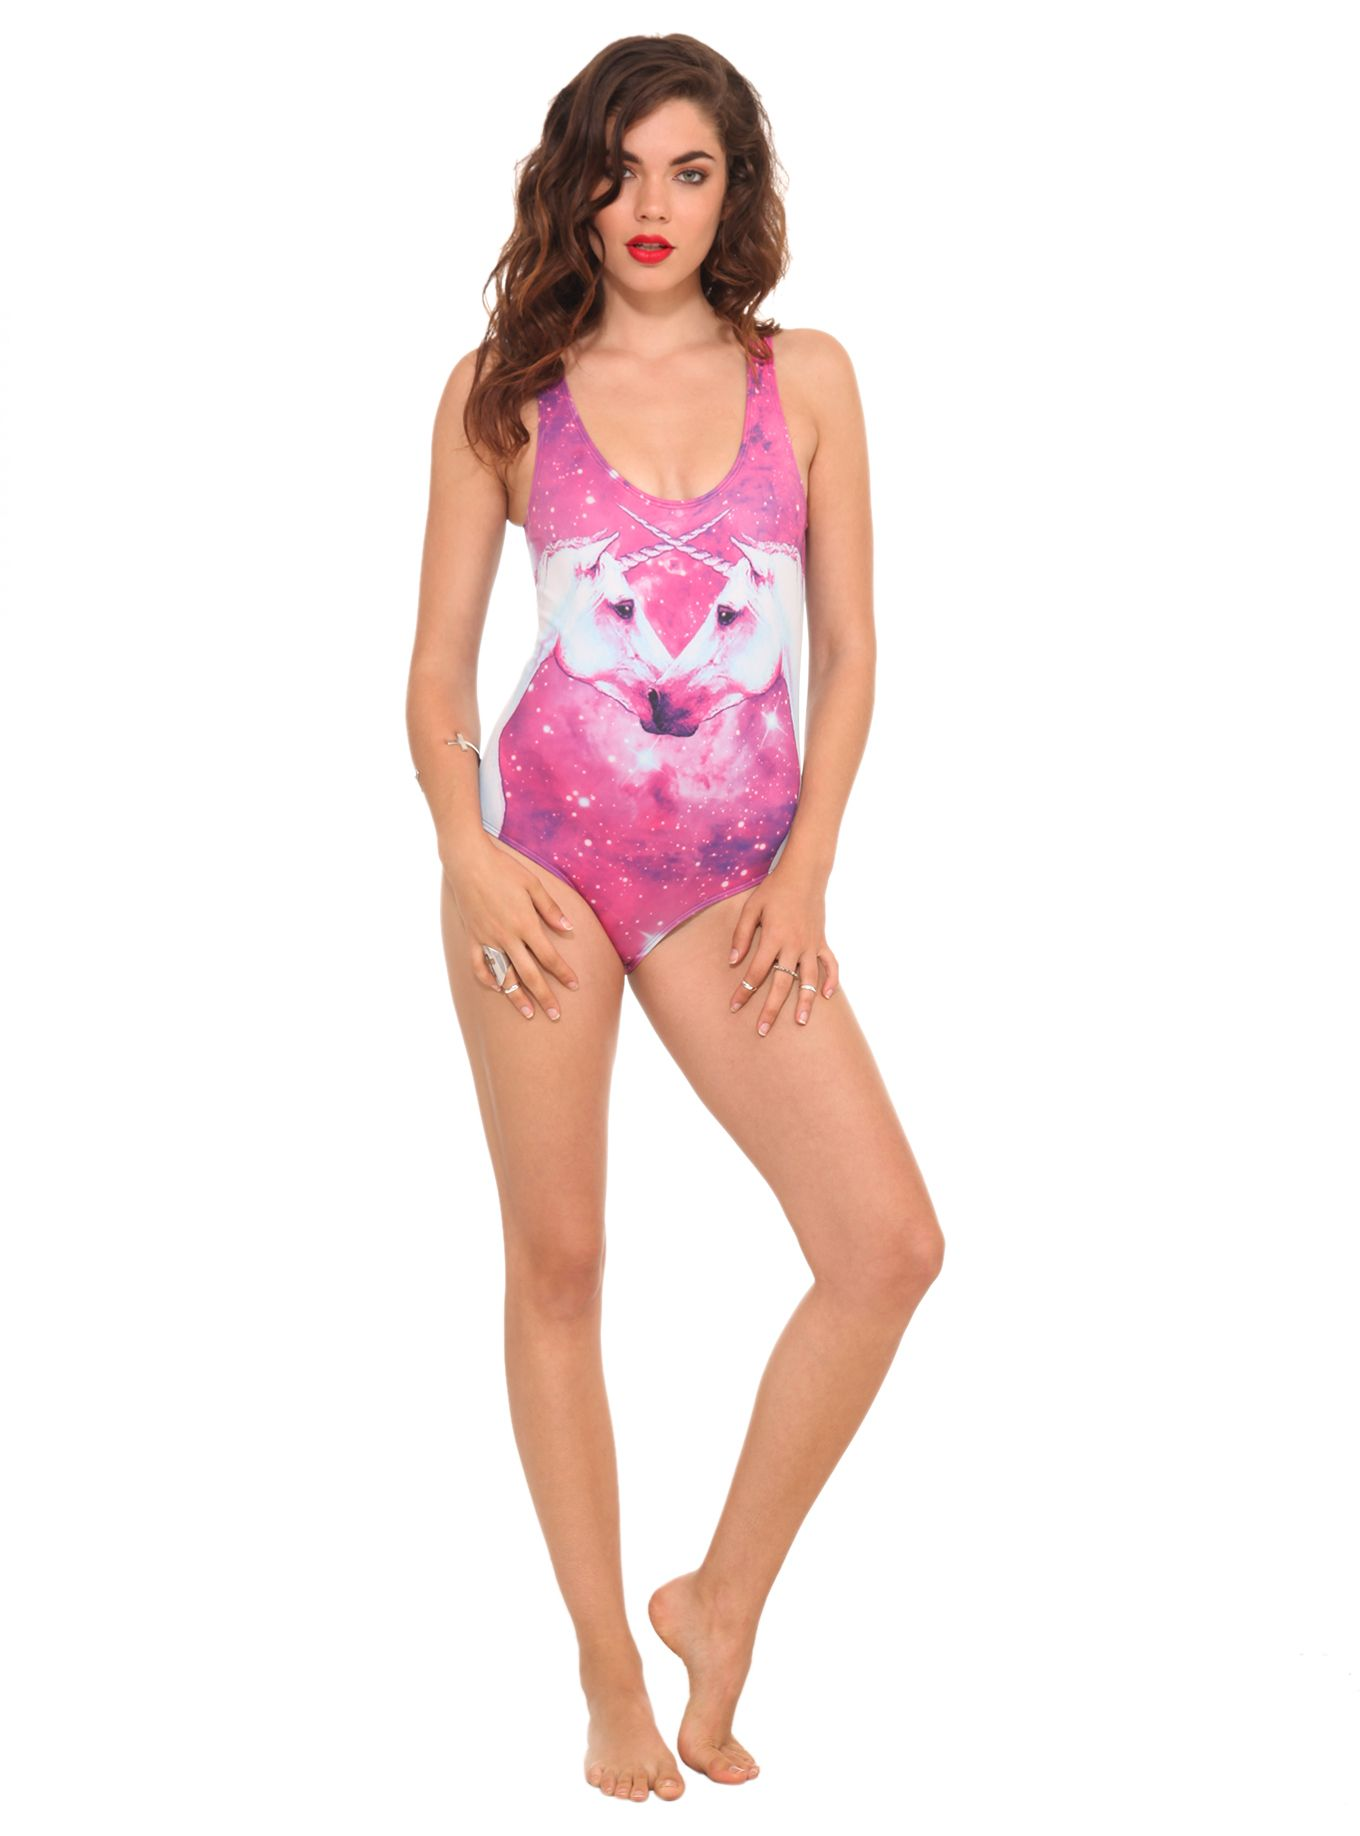 e883450beb unicorn bathing suit. Want this for my lap swimming! It will make me swim  faster for sure.